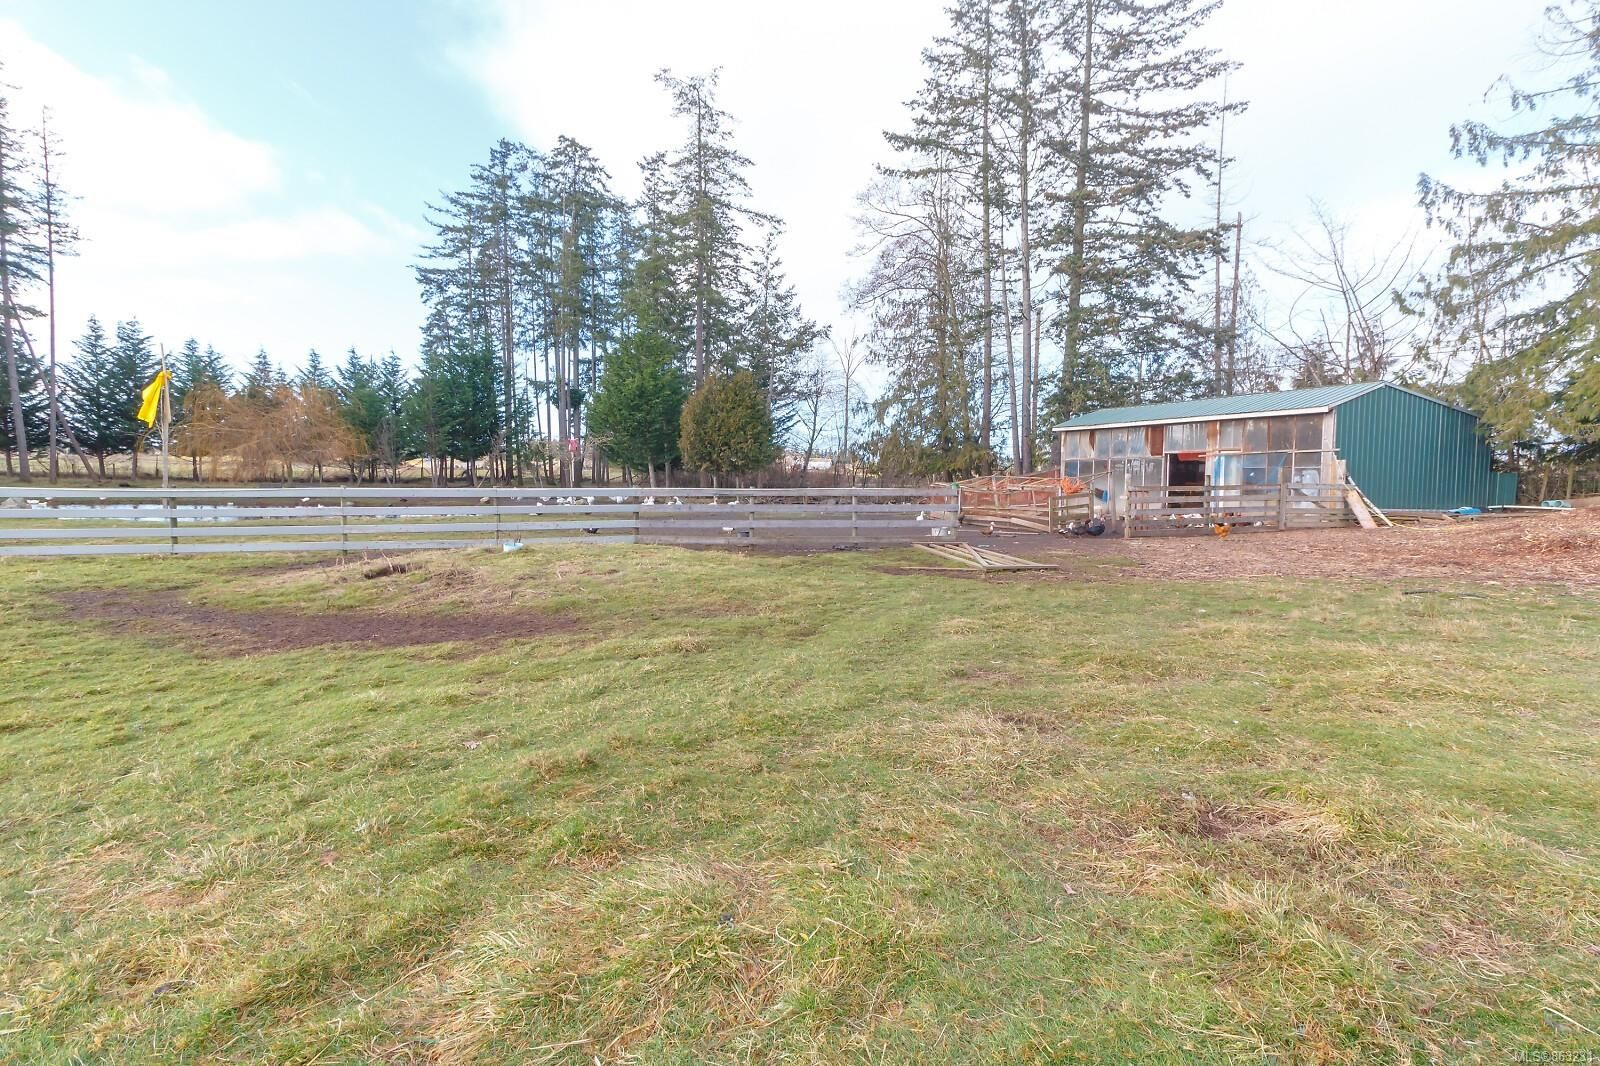 Photo 31: Photos: 1230 Hodges Rd in : PQ French Creek House for sale (Parksville/Qualicum)  : MLS®# 863231